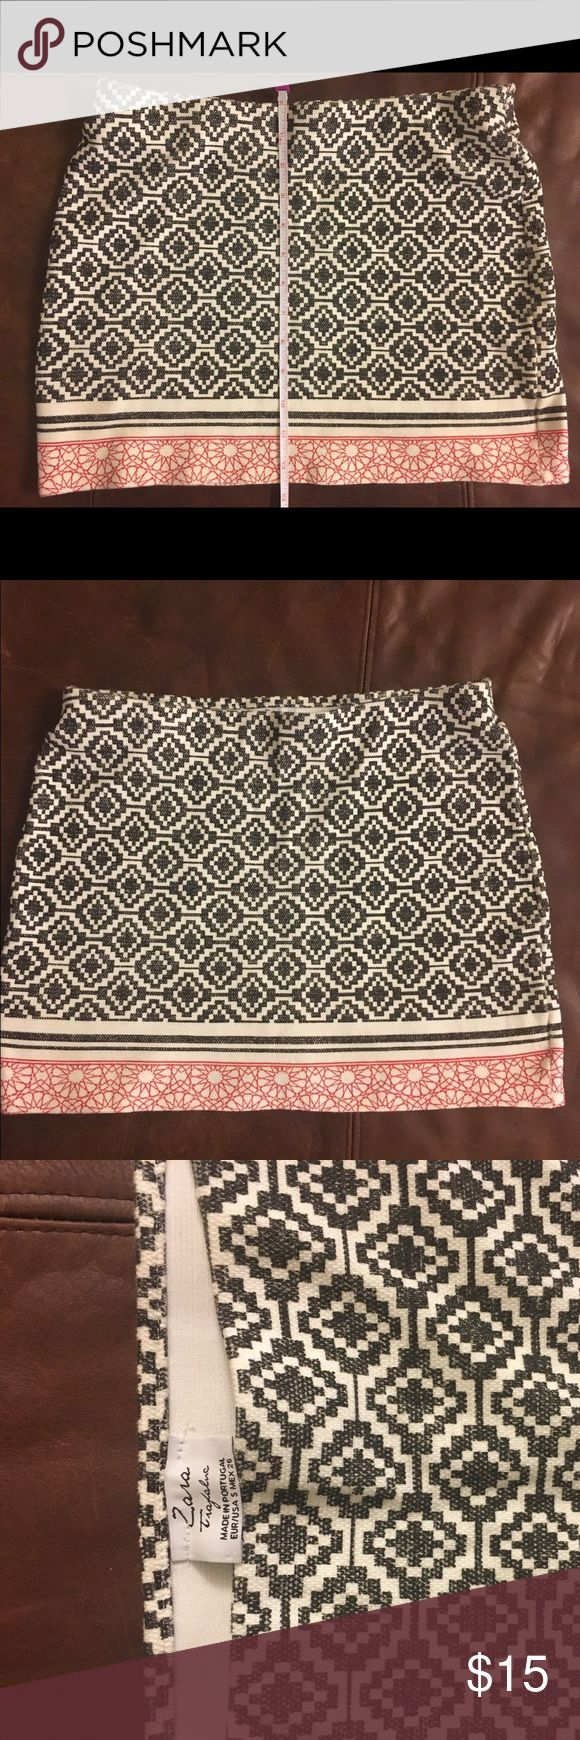 Zara Patterned Bandeau Skirt - new! New Zara skirt that is perfect for summer. Looks great with a tucked in shirt. Size Small. Zara Skirts Mini